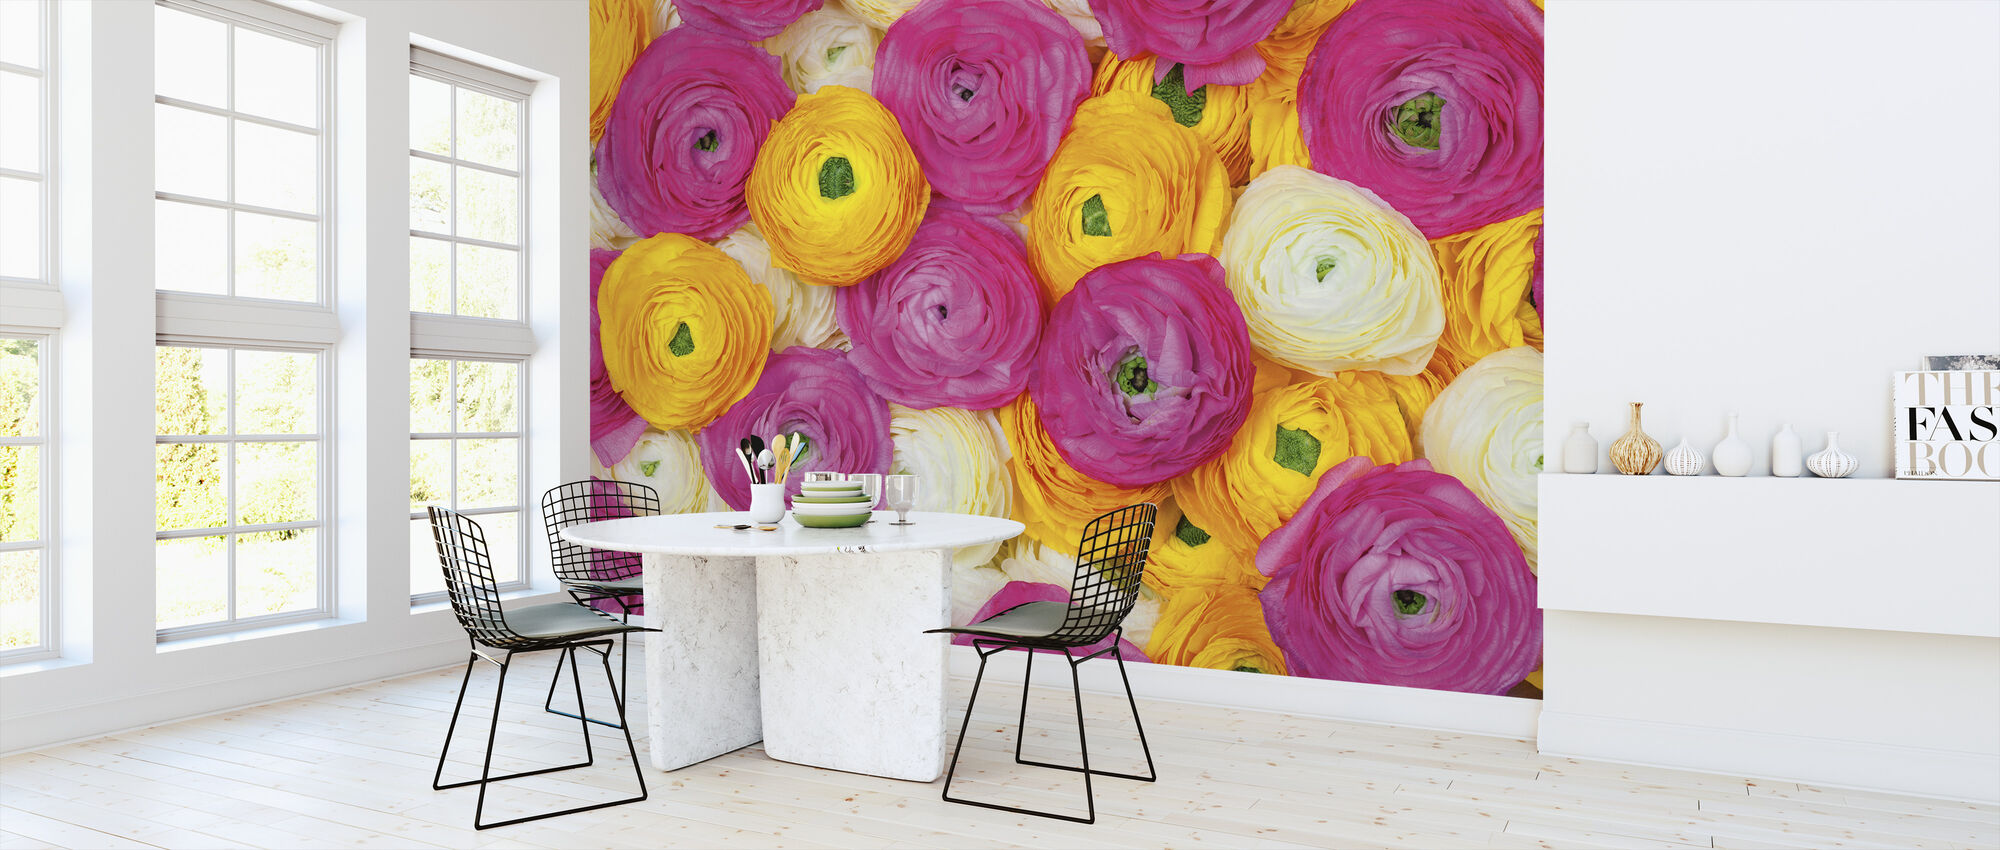 Ranunculus - Wallpaper - Kitchen